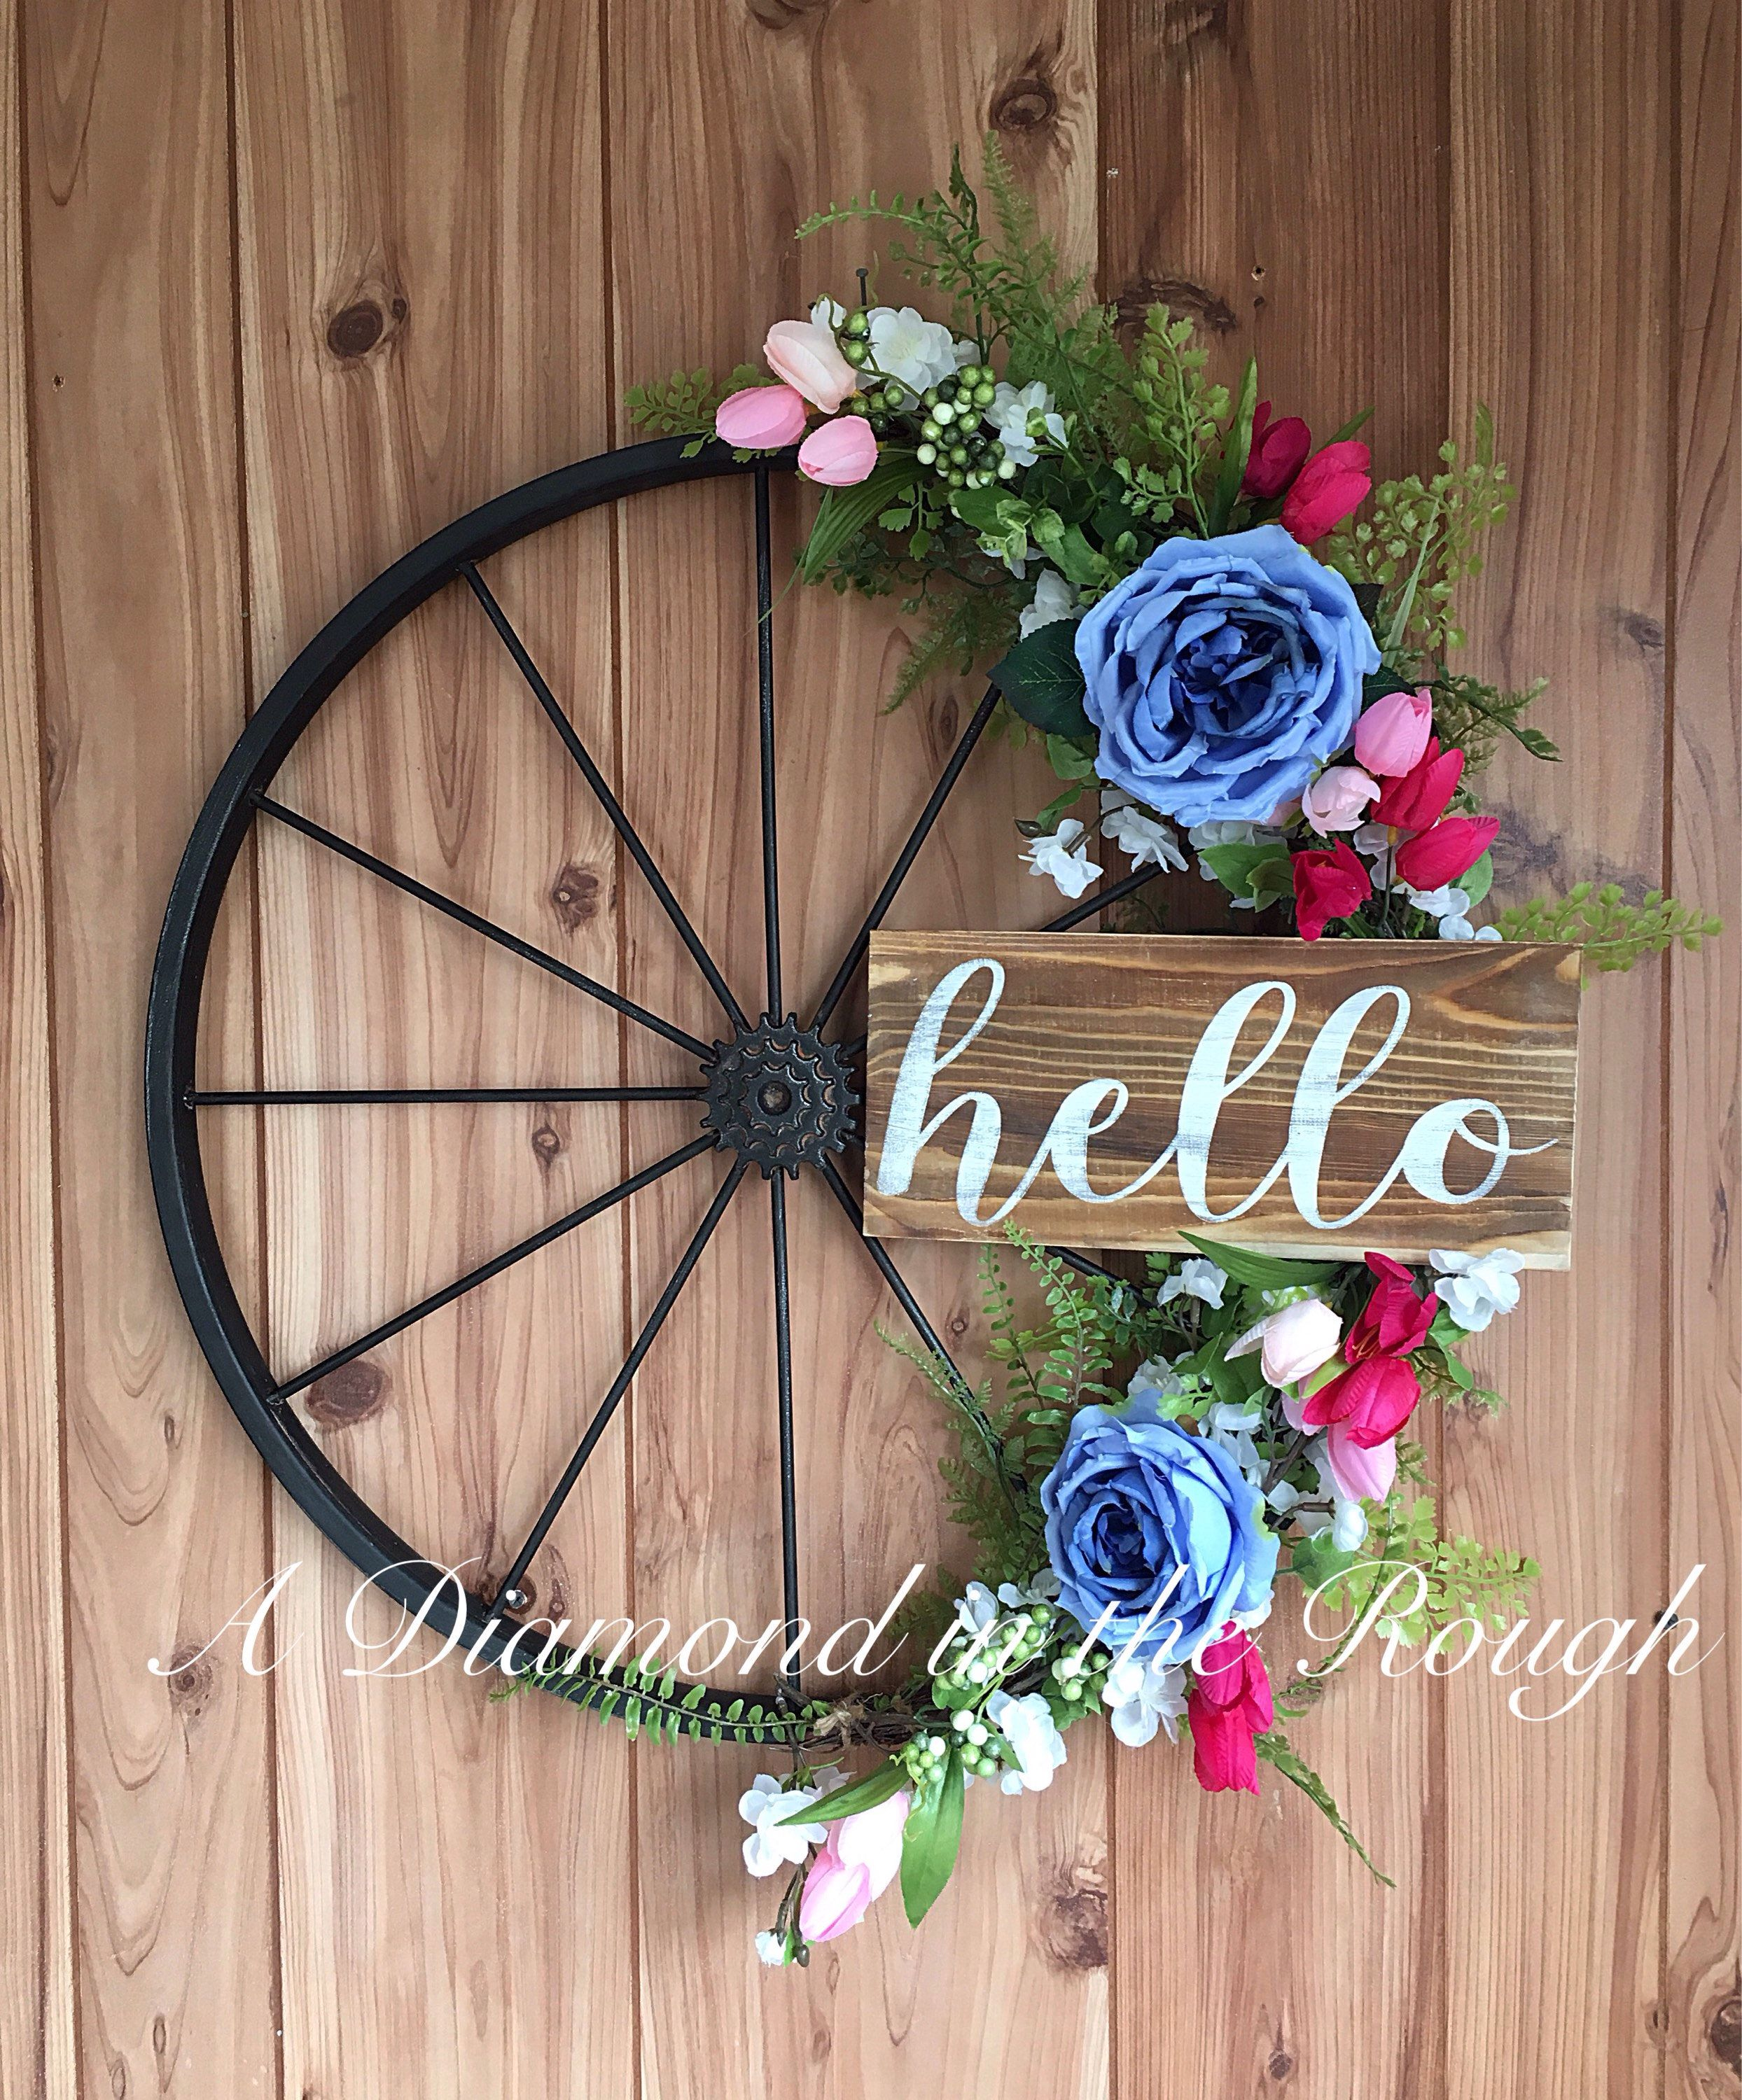 Pin By Terri Filkosky On Projects To Try Wheel Decor Spring Floral Wreath Door Decorations